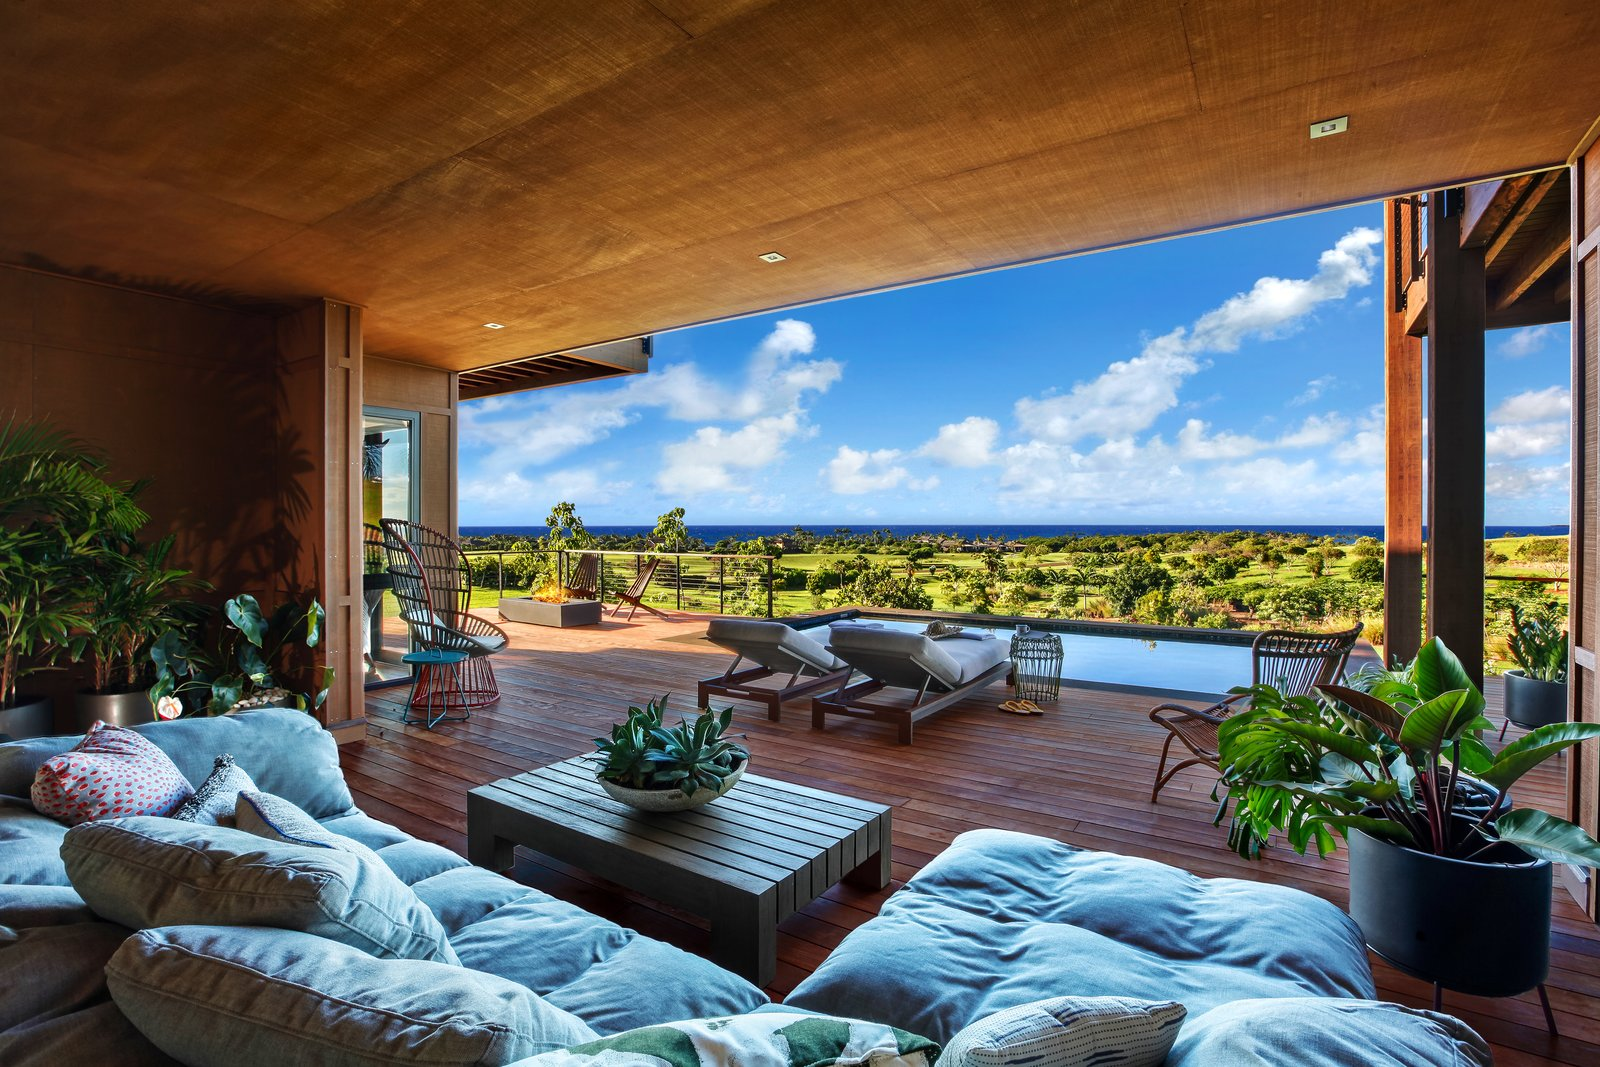 Outdoor, Small, Back Yard, Raised Planters, Infinity, and Large The lanai and the private pool.  Best Outdoor Small Infinity Photos from A Breezy Hawaiian Residence by Olson Kundig Hits the Market at $6.95M